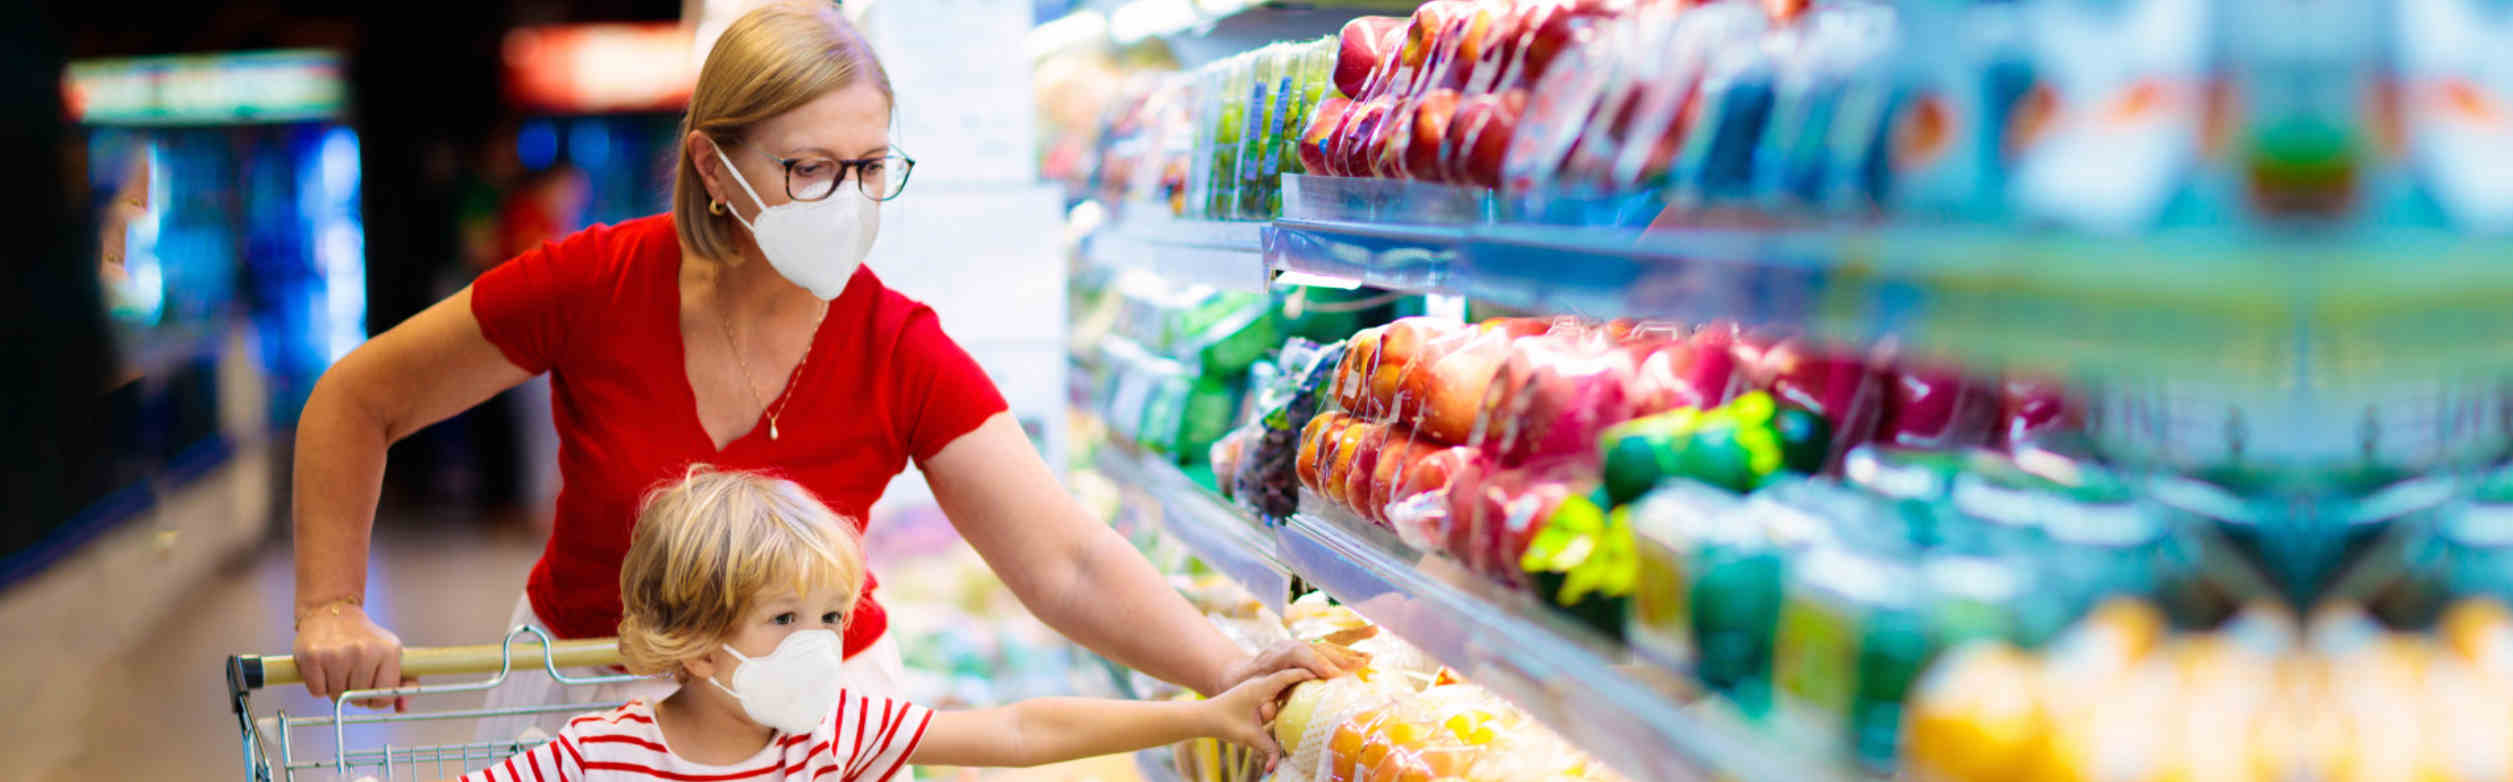 mother-daughter-healthy-choice-for-grocery